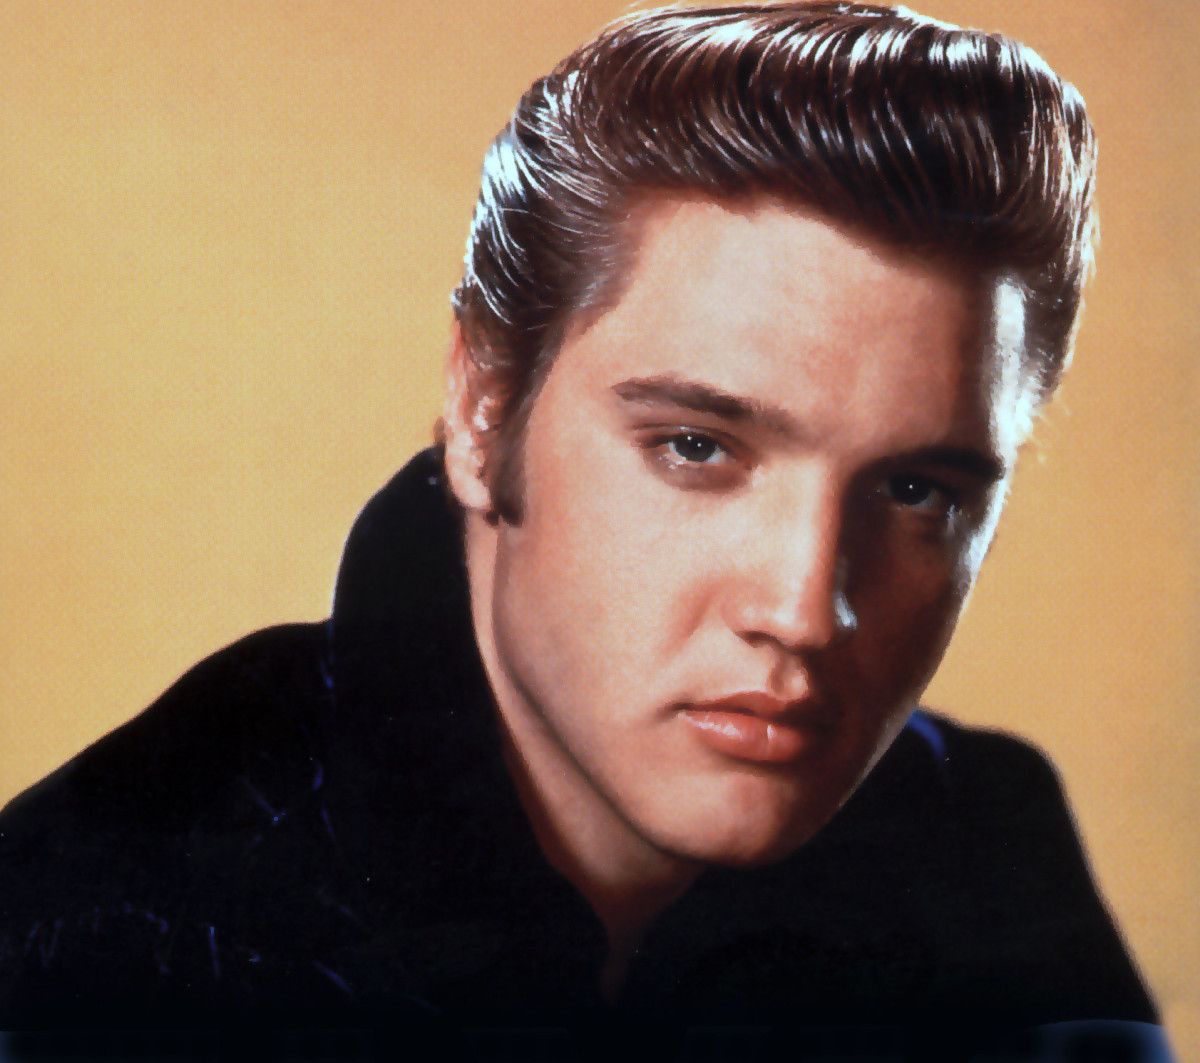 Many people over the years have claimed to have made contact with the ghost of Elvis Presley in various locations.